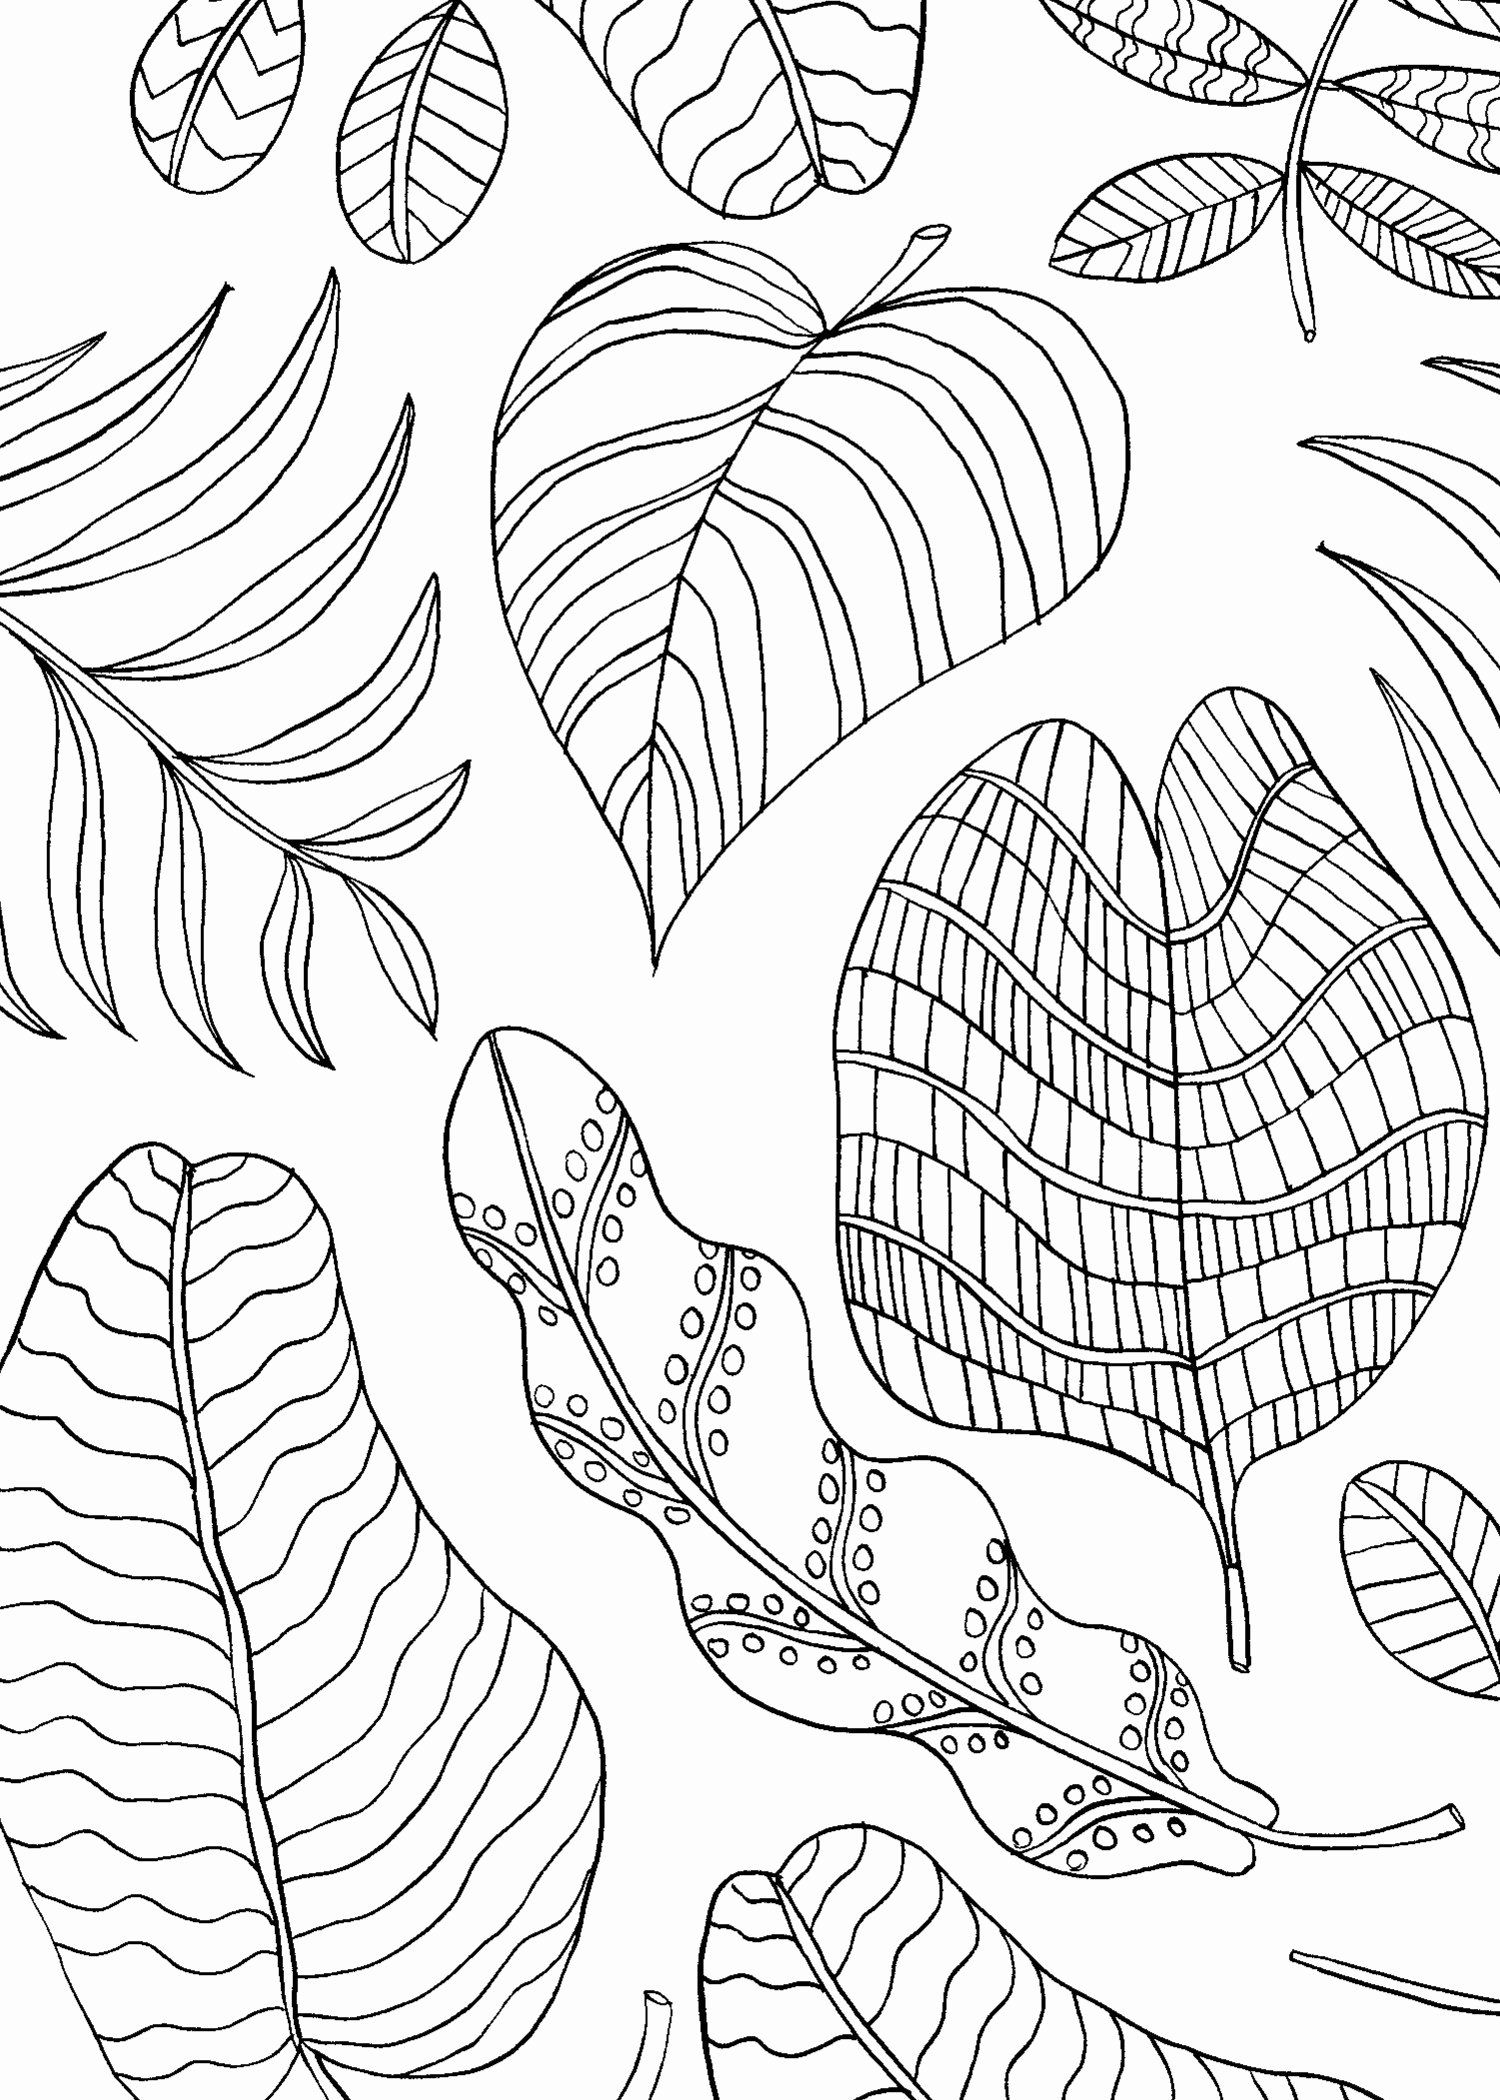 Coloring Pages Tree Leaves Elegant Mindfulness Coloring Pages Best Coloring Pages For Kids